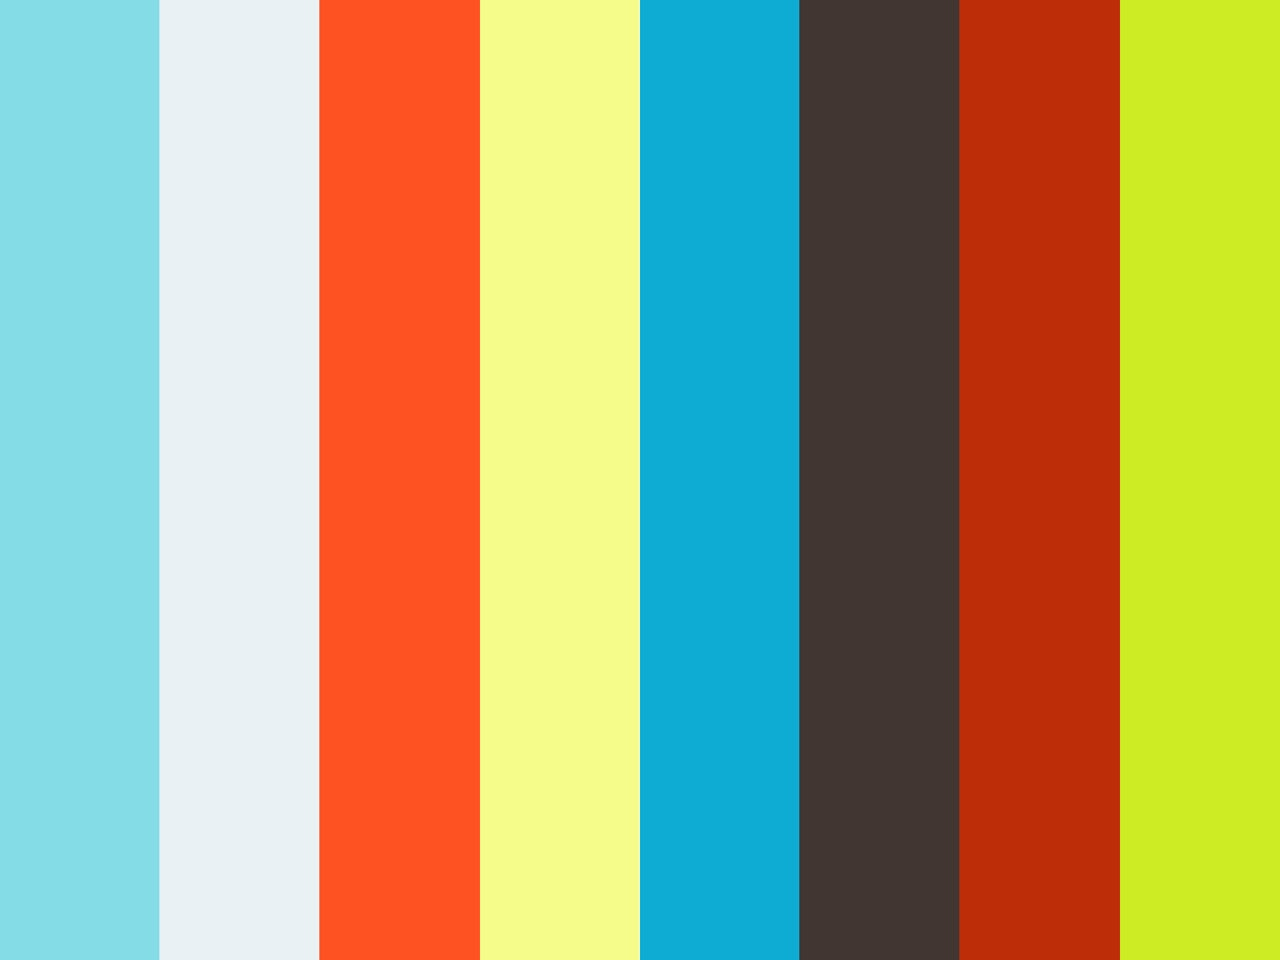 Emma's Birthday @ School